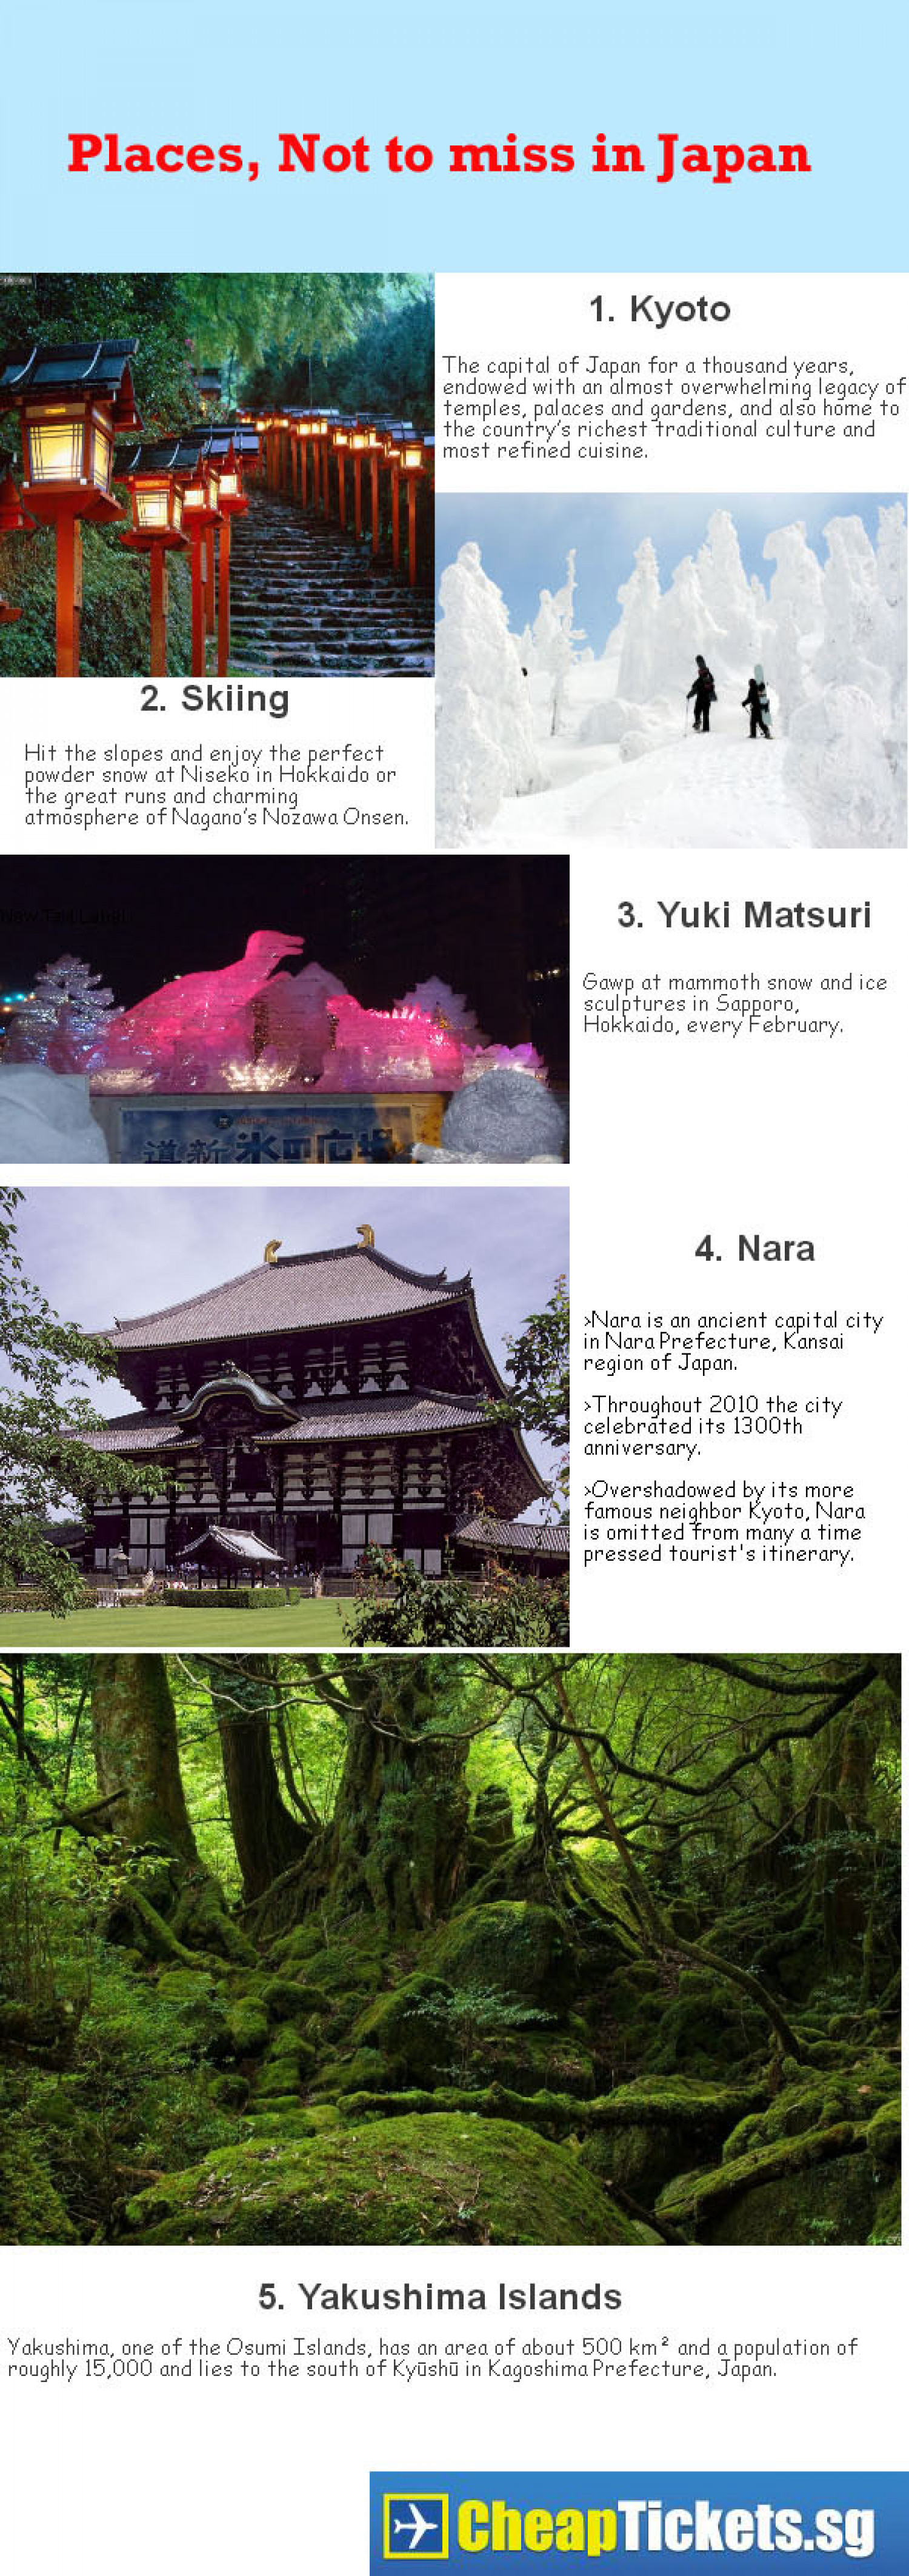 Places, Not to Miss In Japan Infographic